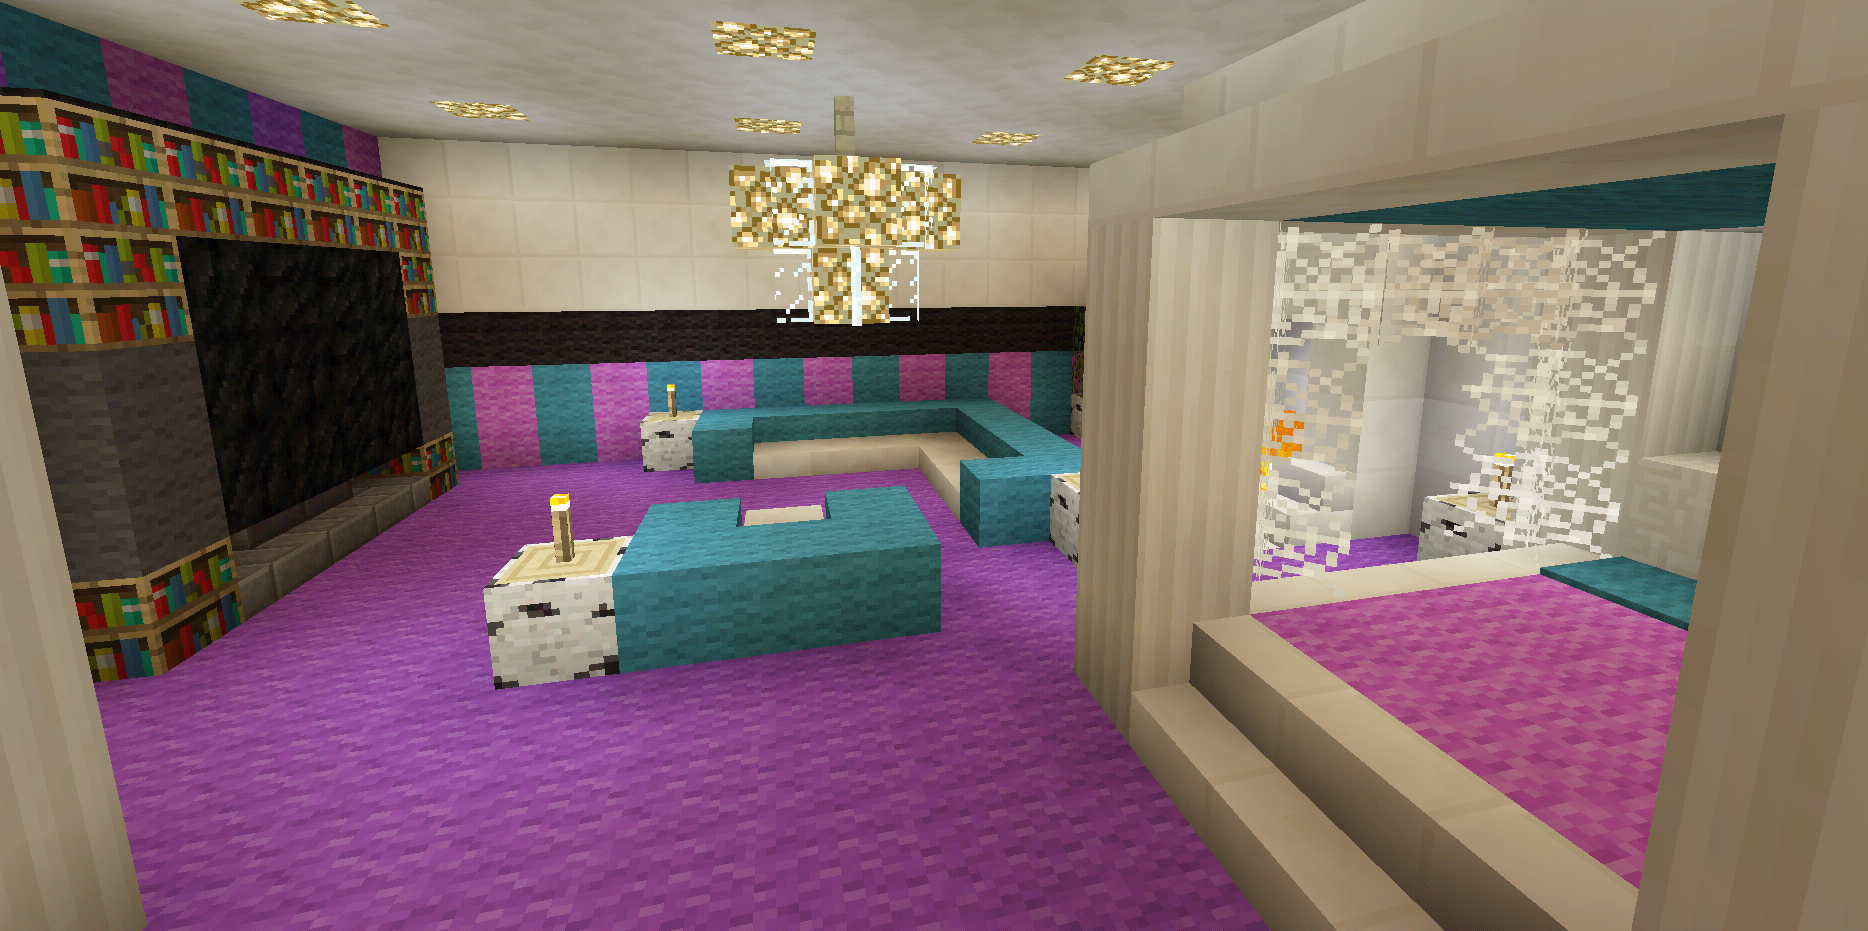 Minecraft bedroom pink girl purple wallpaper wall design for Girls bedroom wallpaper ideas